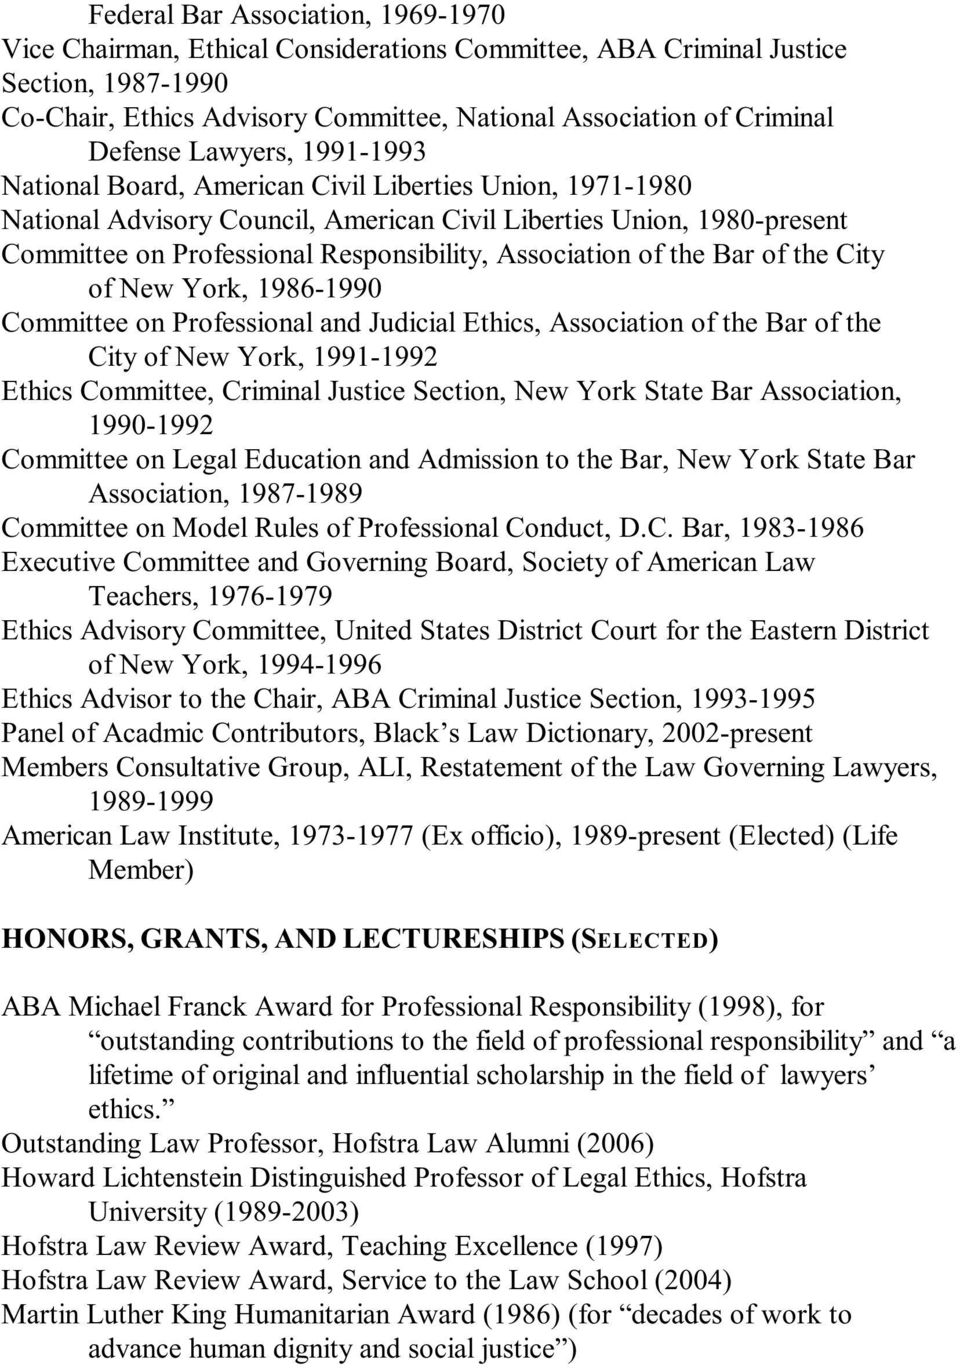 Association of the Bar of the City of New York, 1986-1990 Committee on Professional and Judicial Ethics, Association of the Bar of the City of New York, 1991-1992 Ethics Committee, Criminal Justice